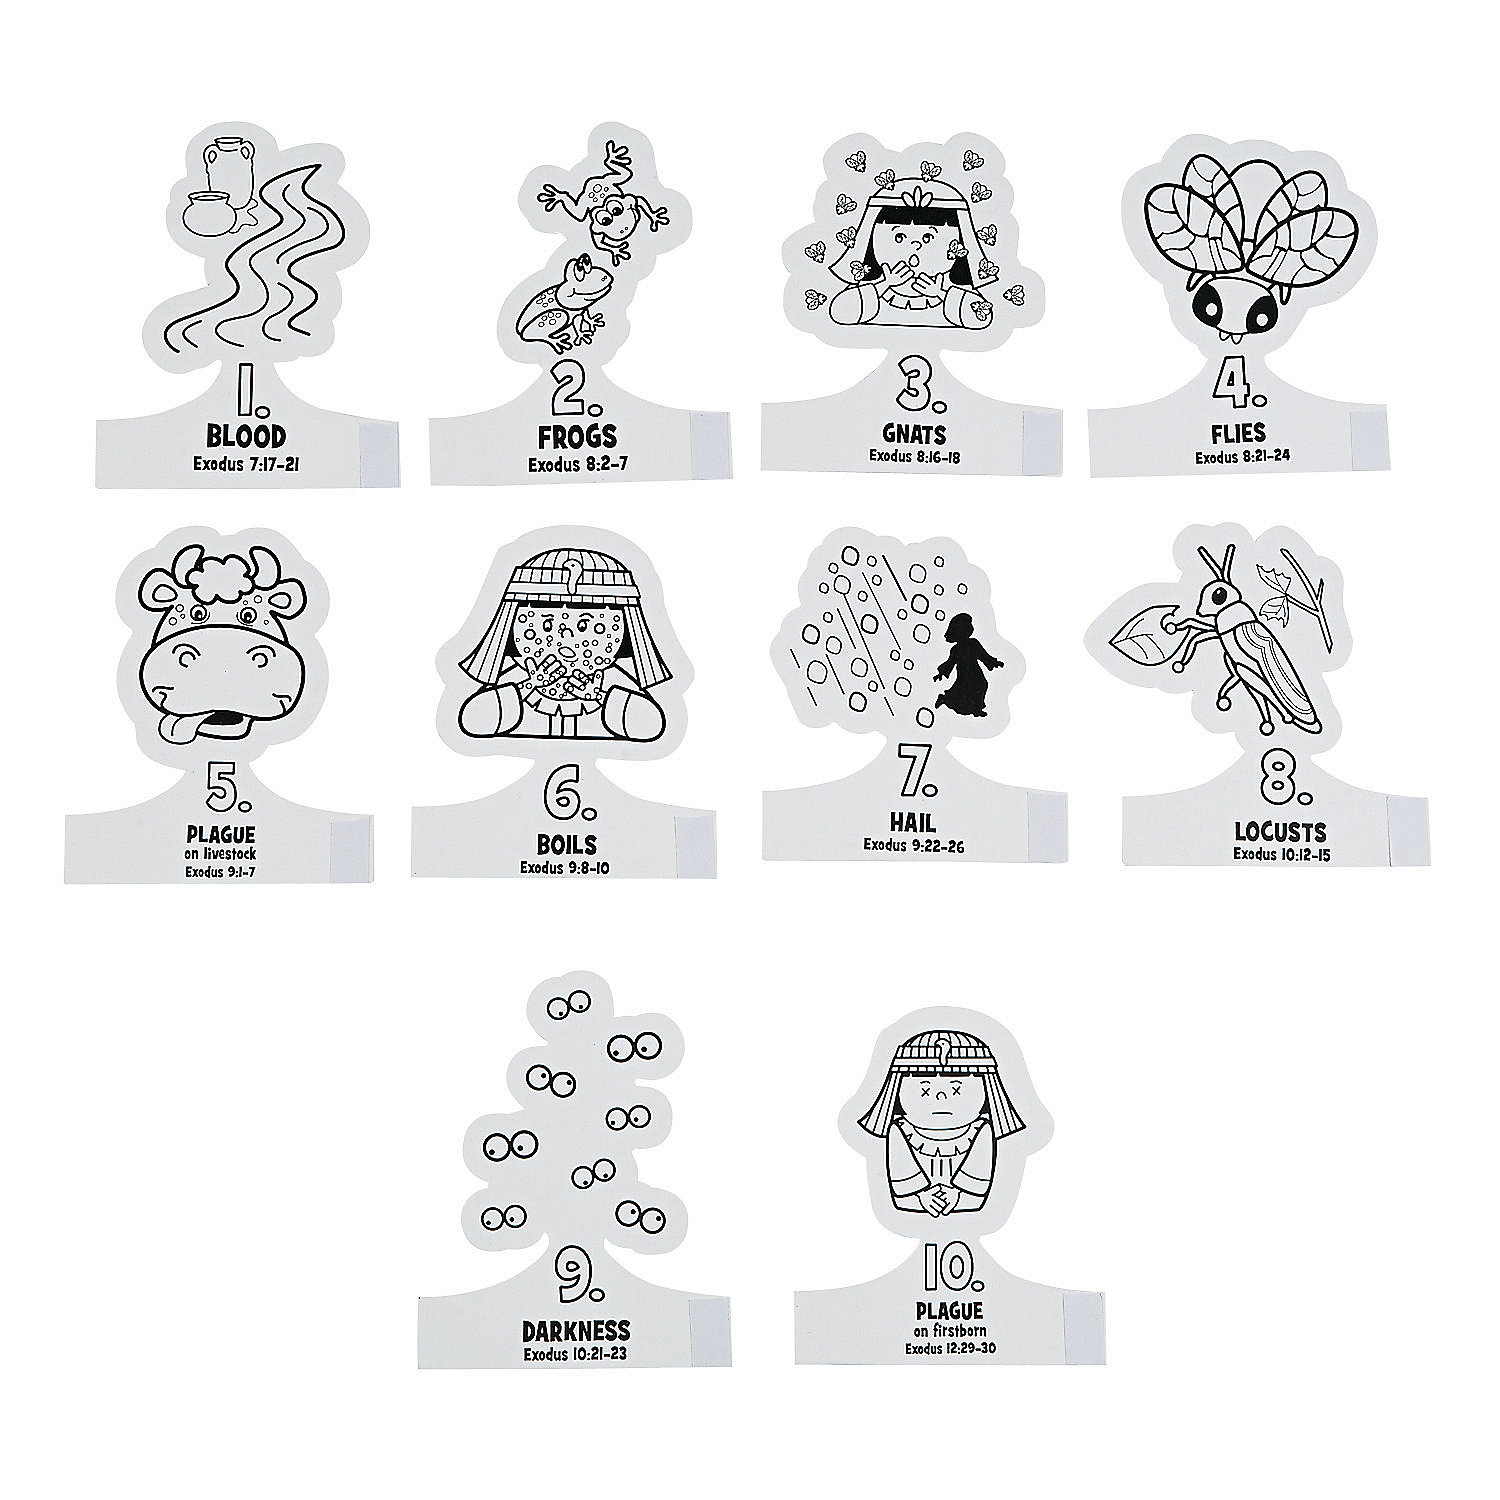 10 commandments coloring pages - color your own plagues finger puppets a2 fltr